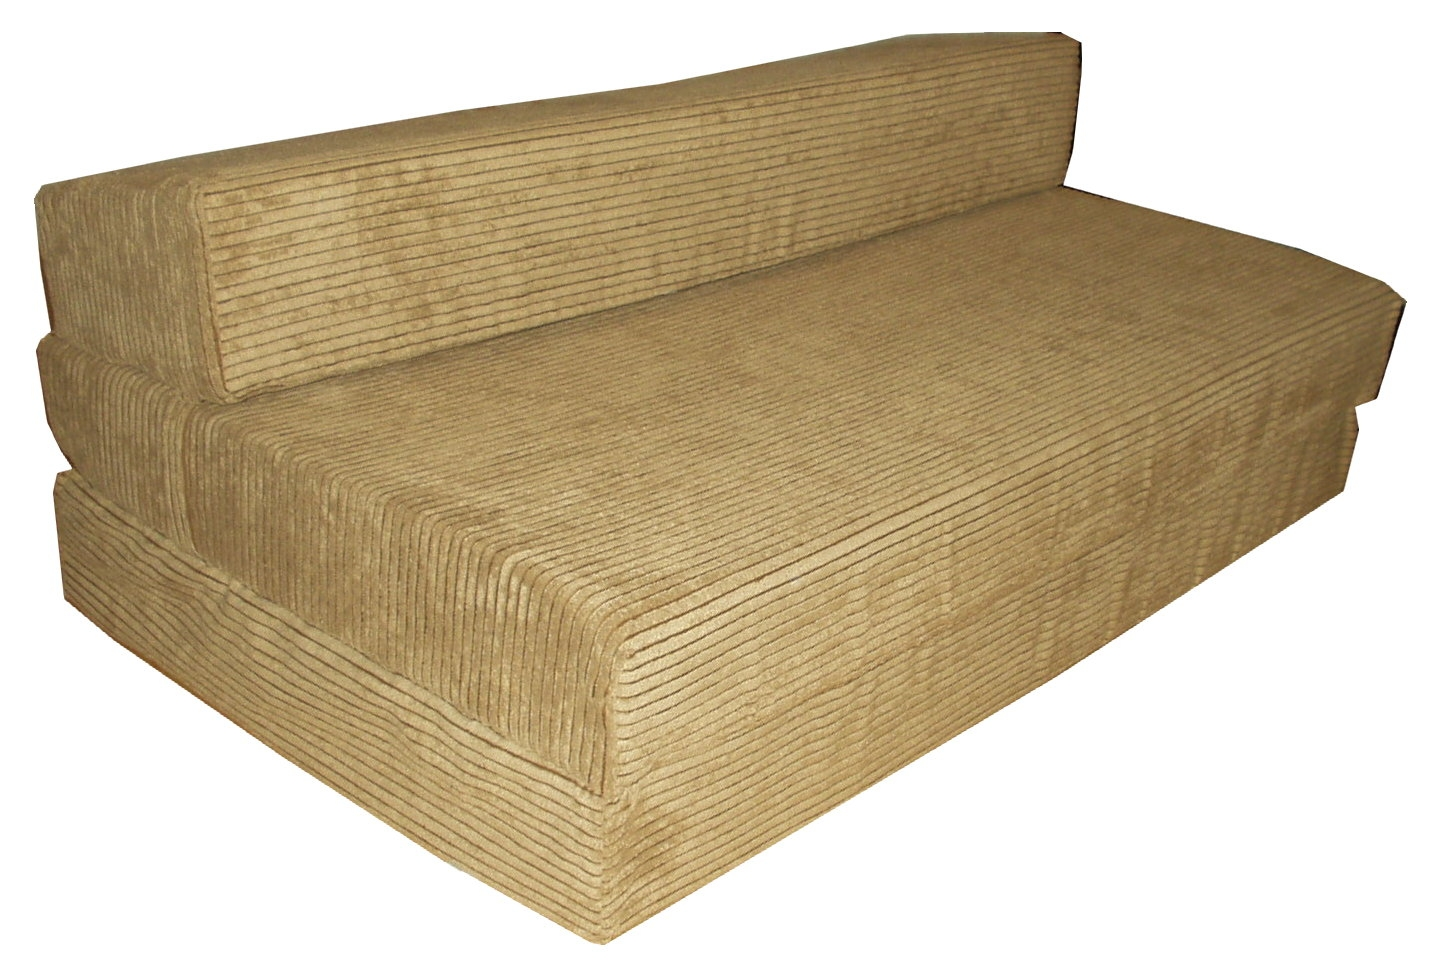 Folding Bed Sofa For Folding Sofa Chairs (Image 7 of 15)